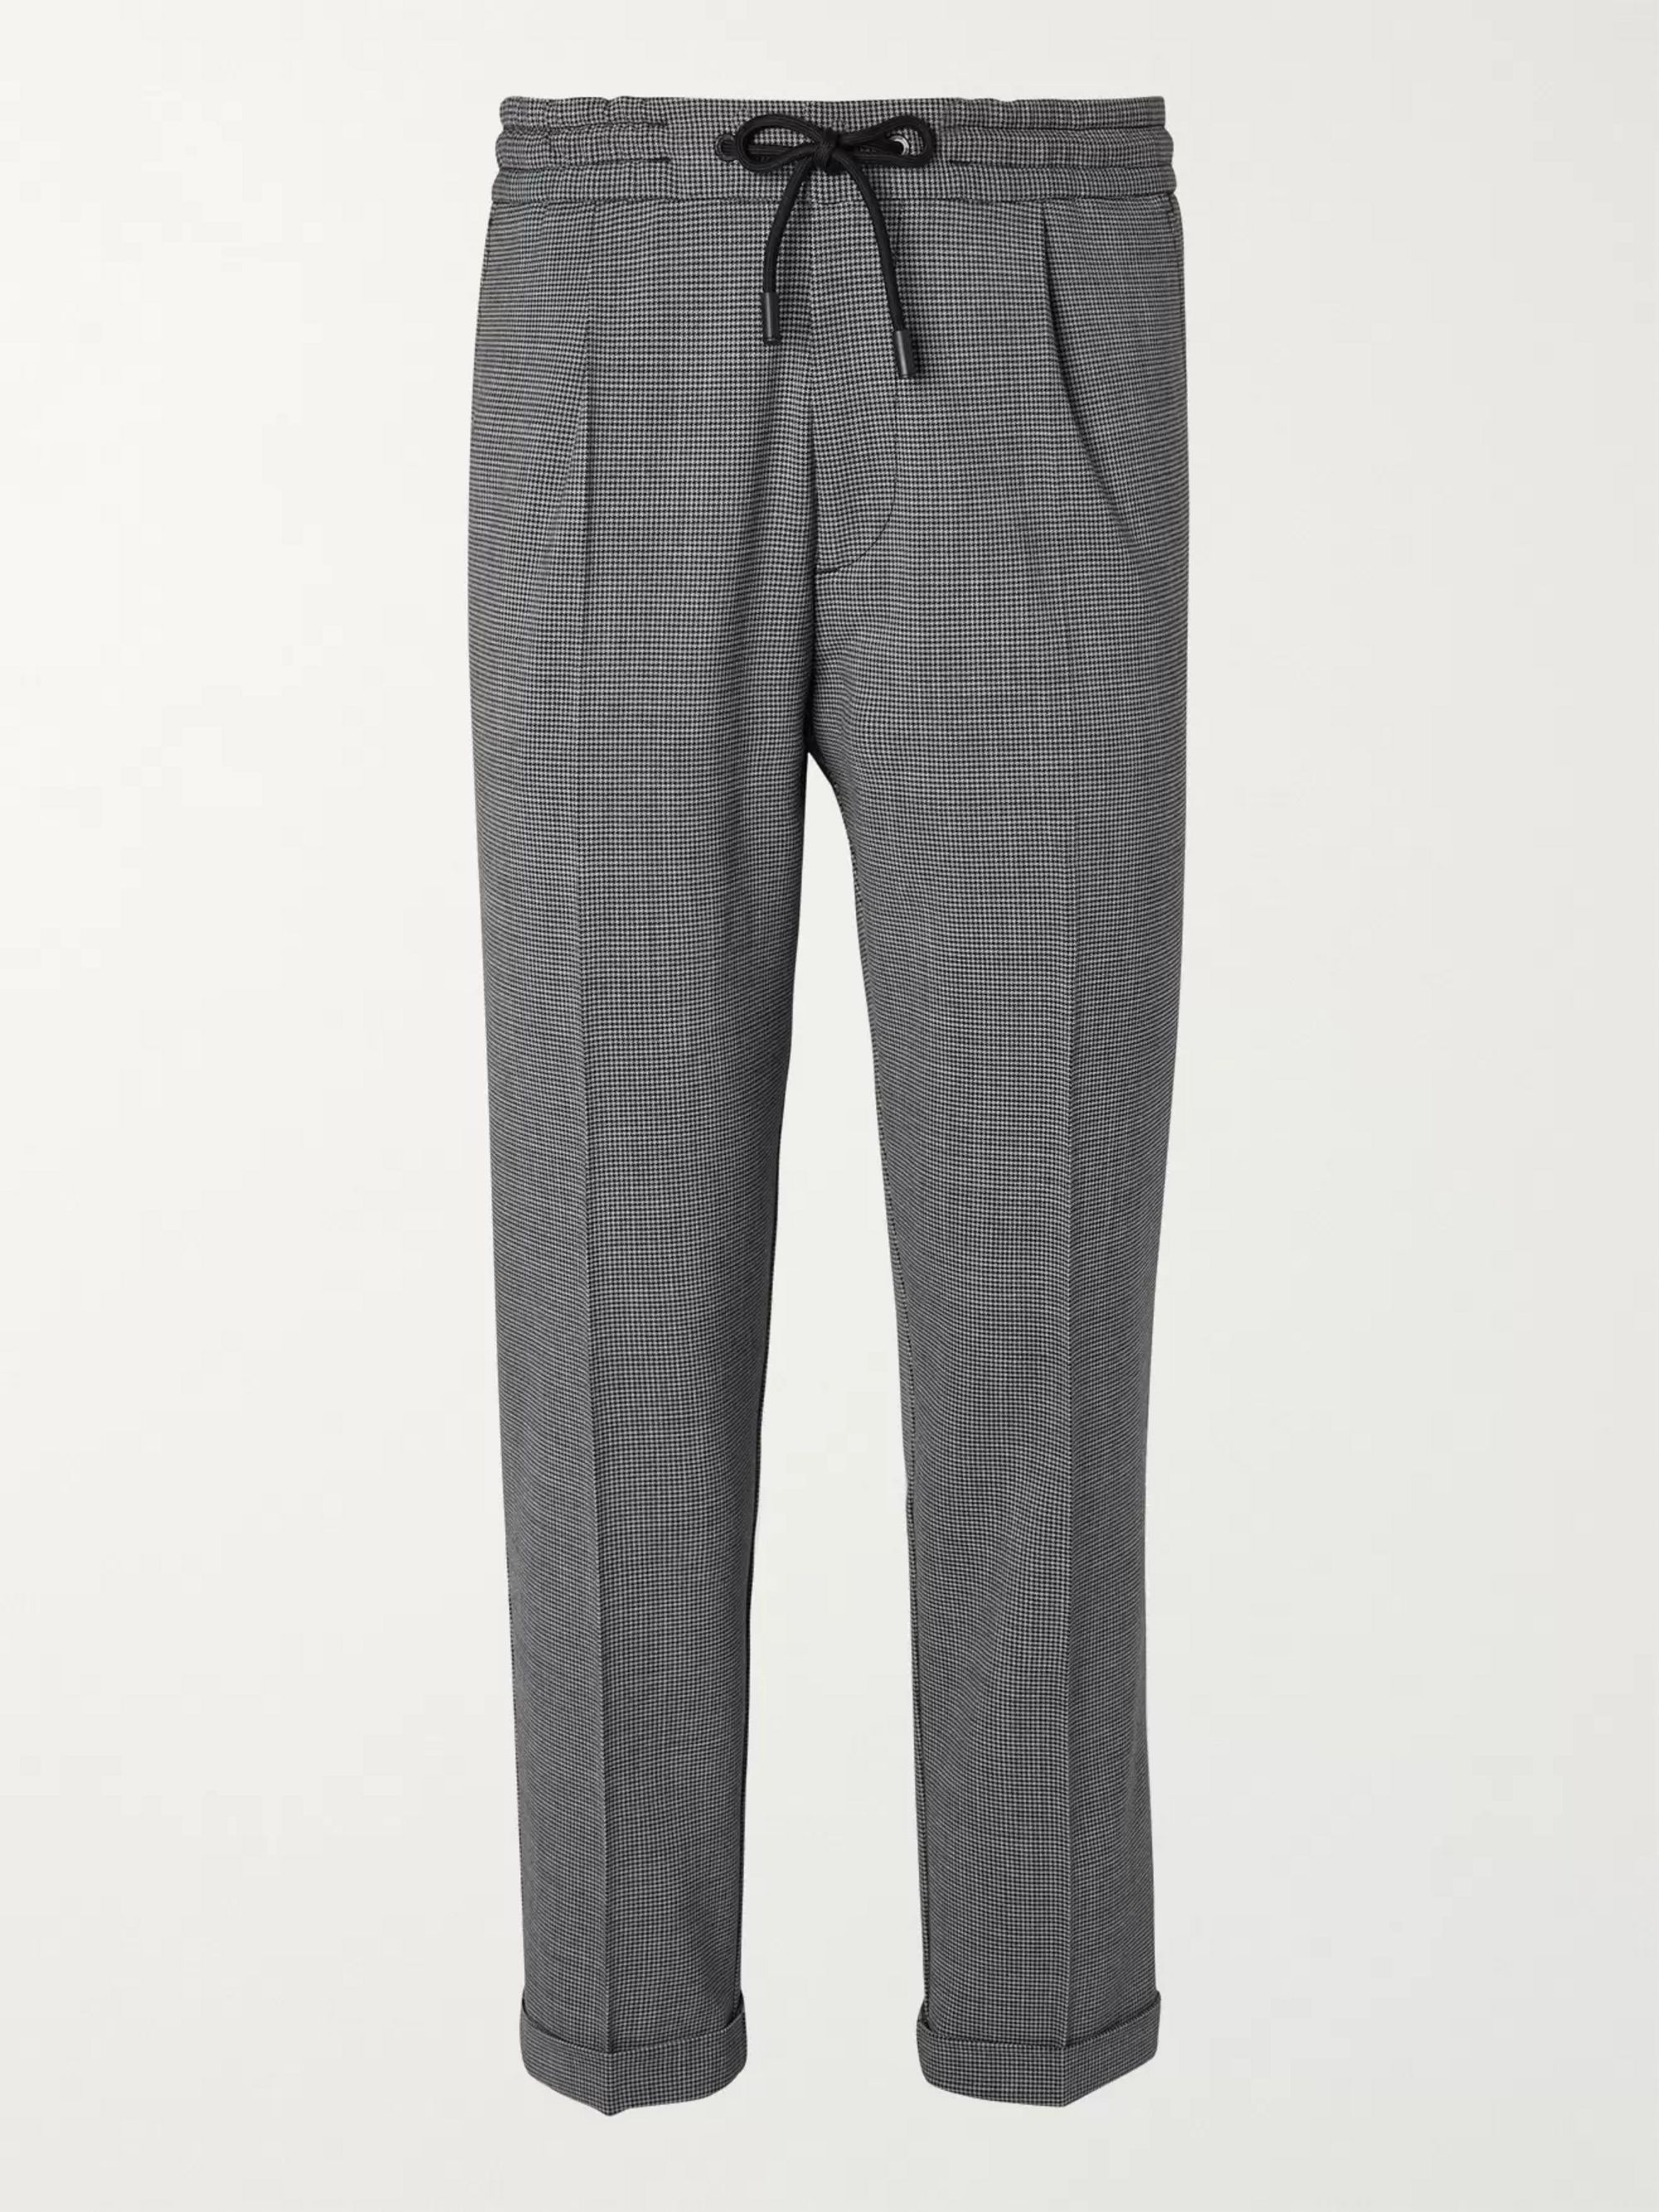 HUGO BOSS Kirio Slim-Fit Tapered Pleated Houndstooth Woven Drawstring Trousers